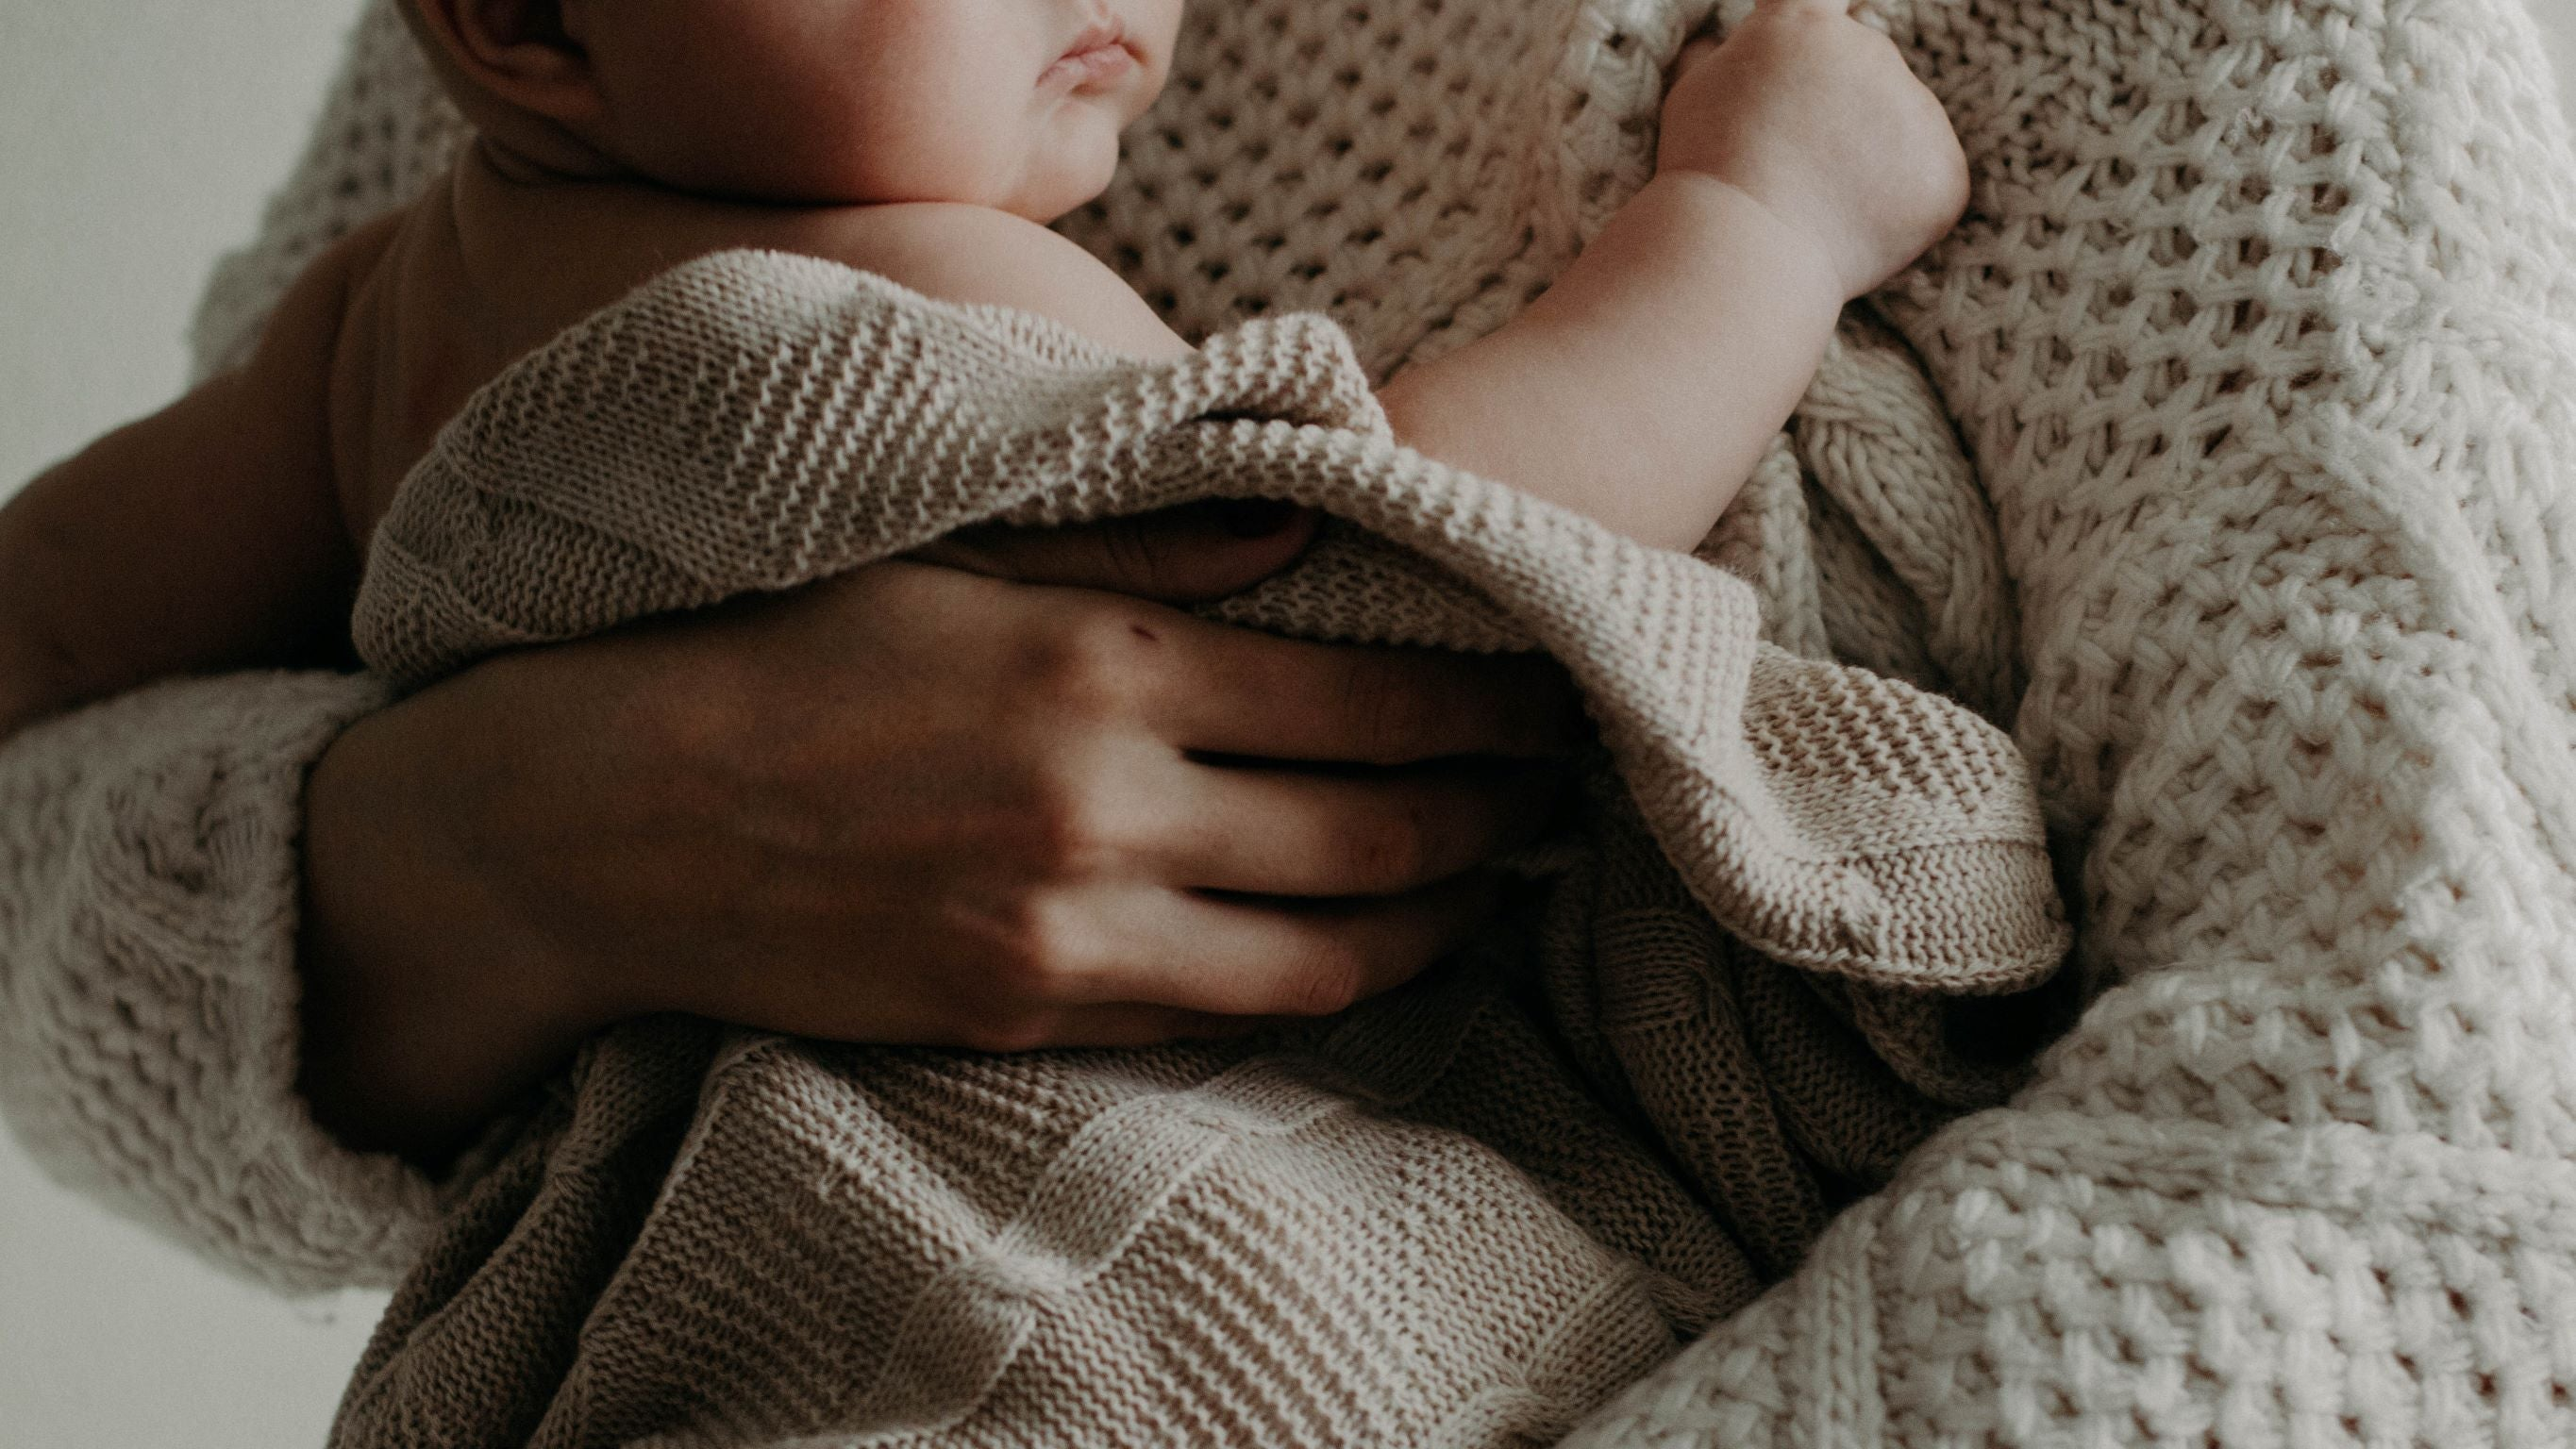 baby being held in cozy blanket by person wearing knit sweater